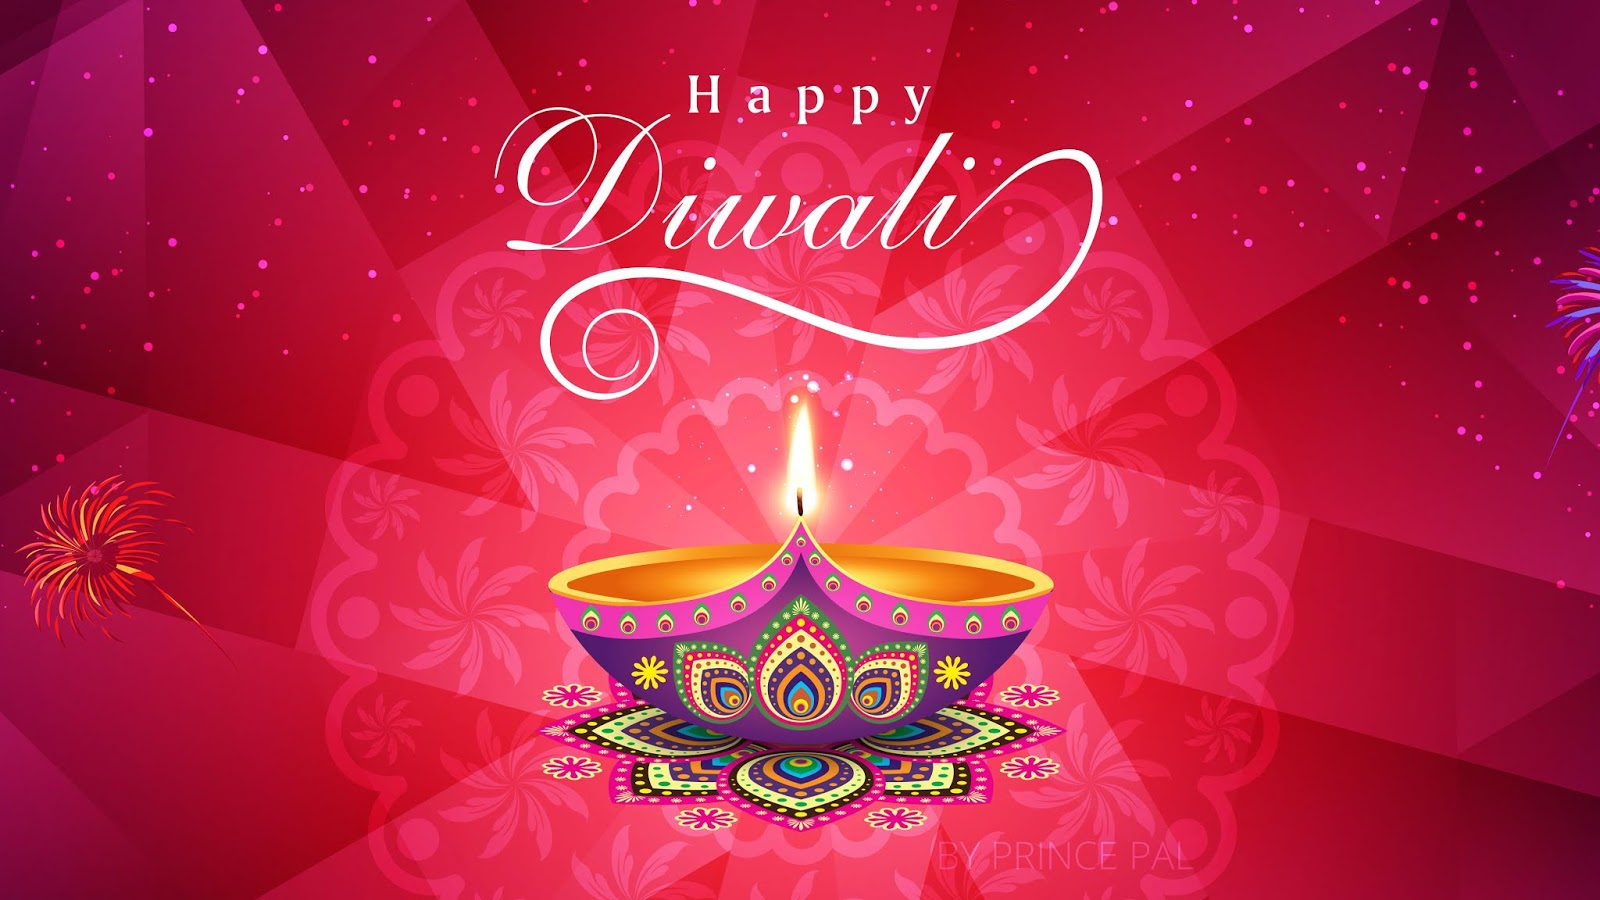 Happy Diwali HD Wallpaper 2018